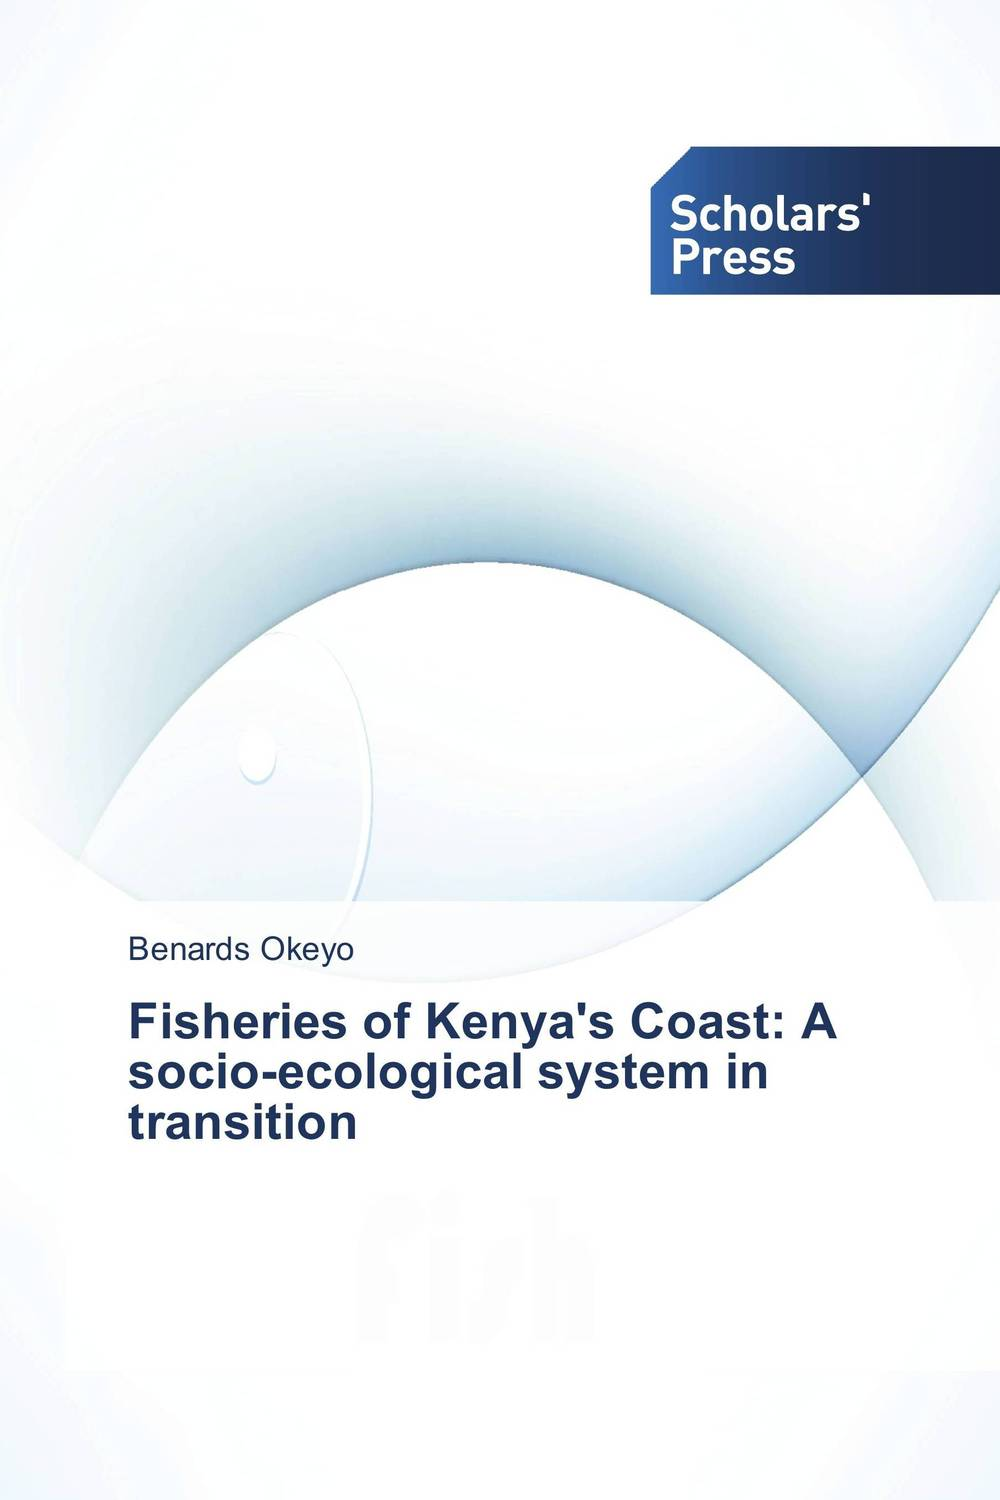 Fisheries of Kenya's Coast: A socio-ecological system in transition alan roxburgh missional map making skills for leading in times of transition